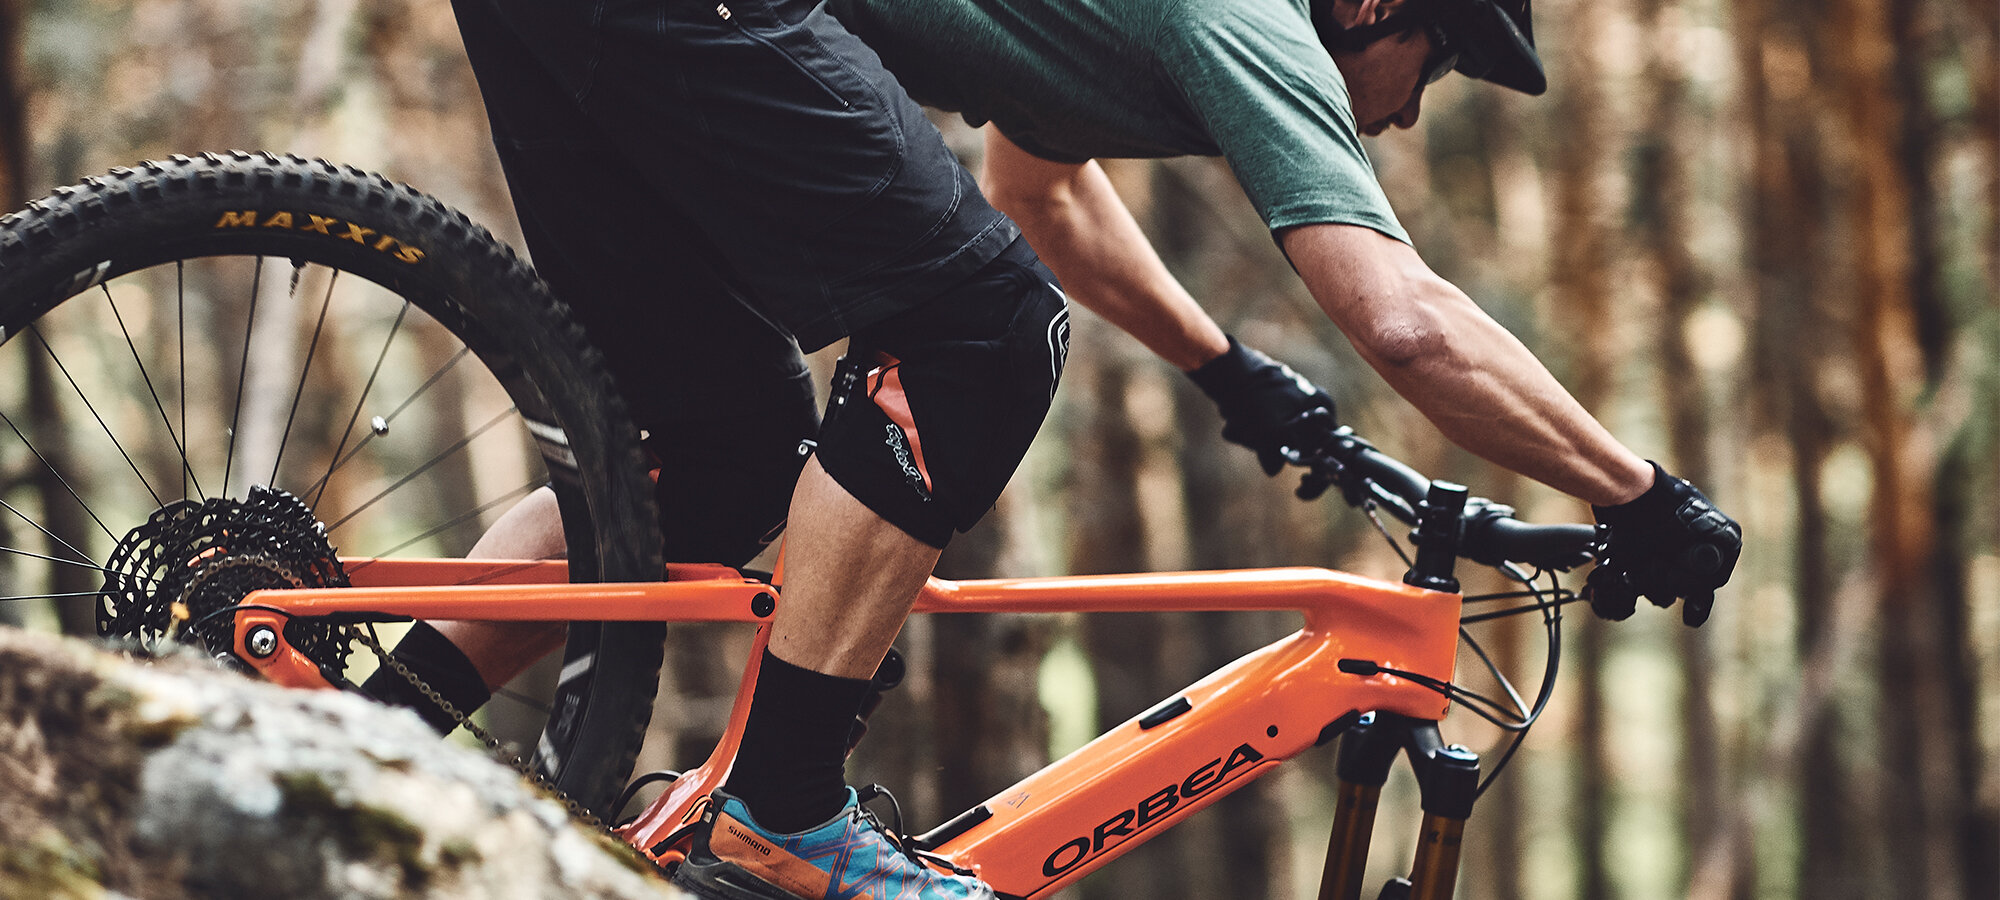 The All New Orbea Wild FS  - Whatever obstacles exist between you, the trails, and your Special Places, it's time to run over them.